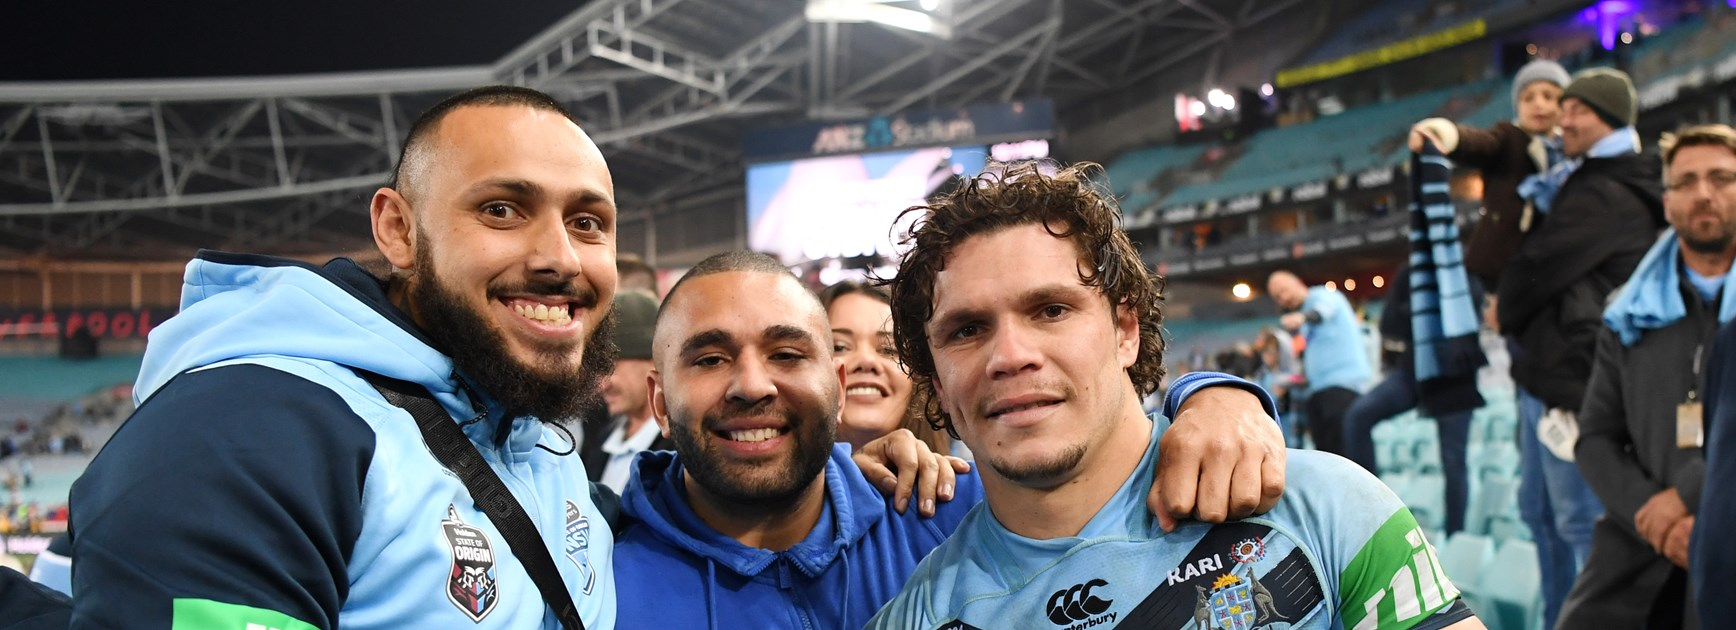 Roberts Dedicates Origin Win To His Brother